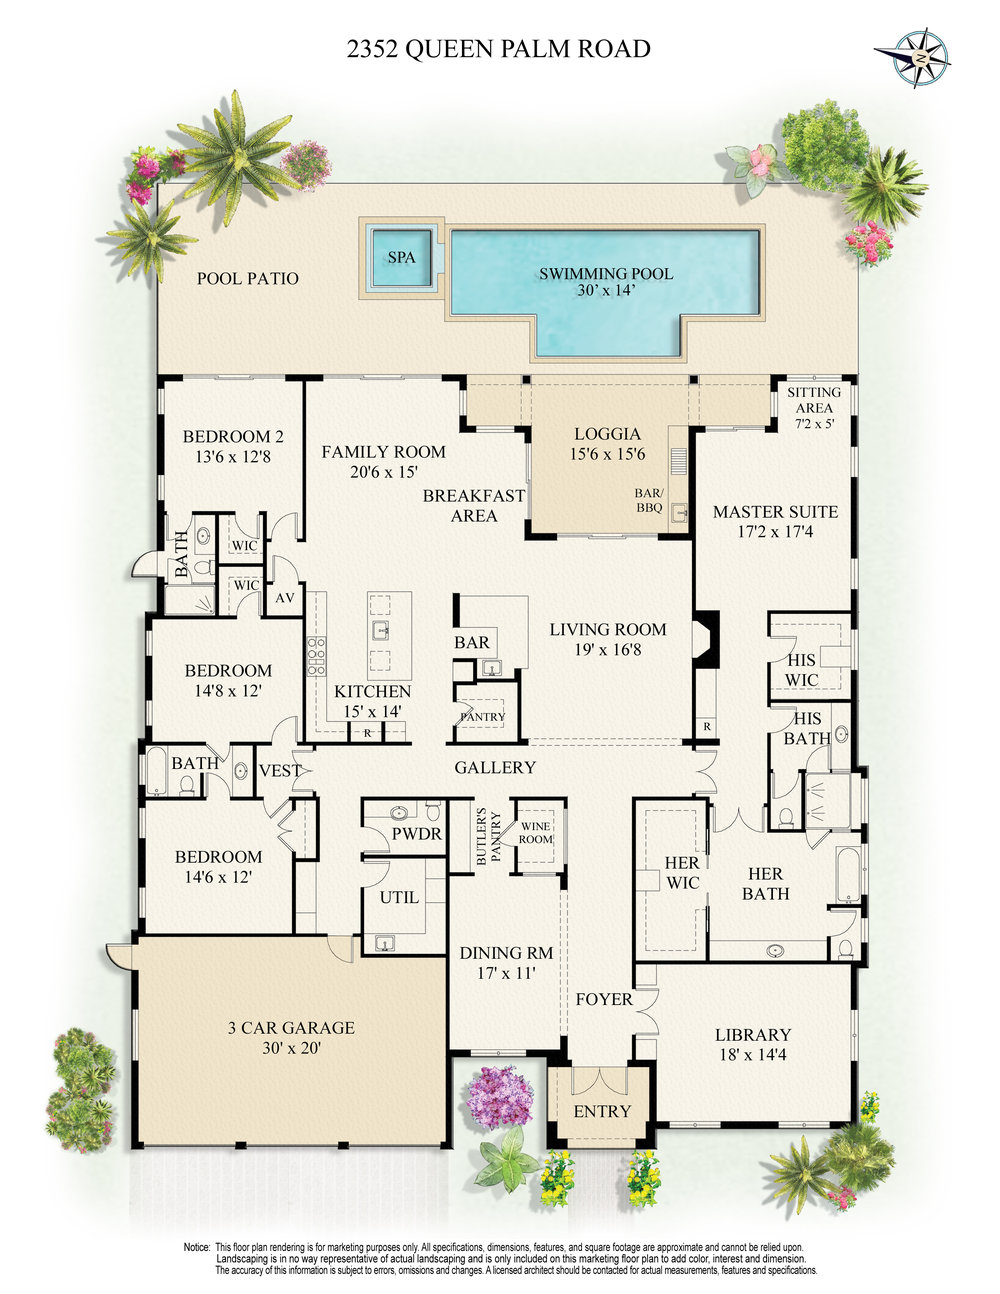 Floor Plan - 2352 QUEEN PALM RD color.jpg